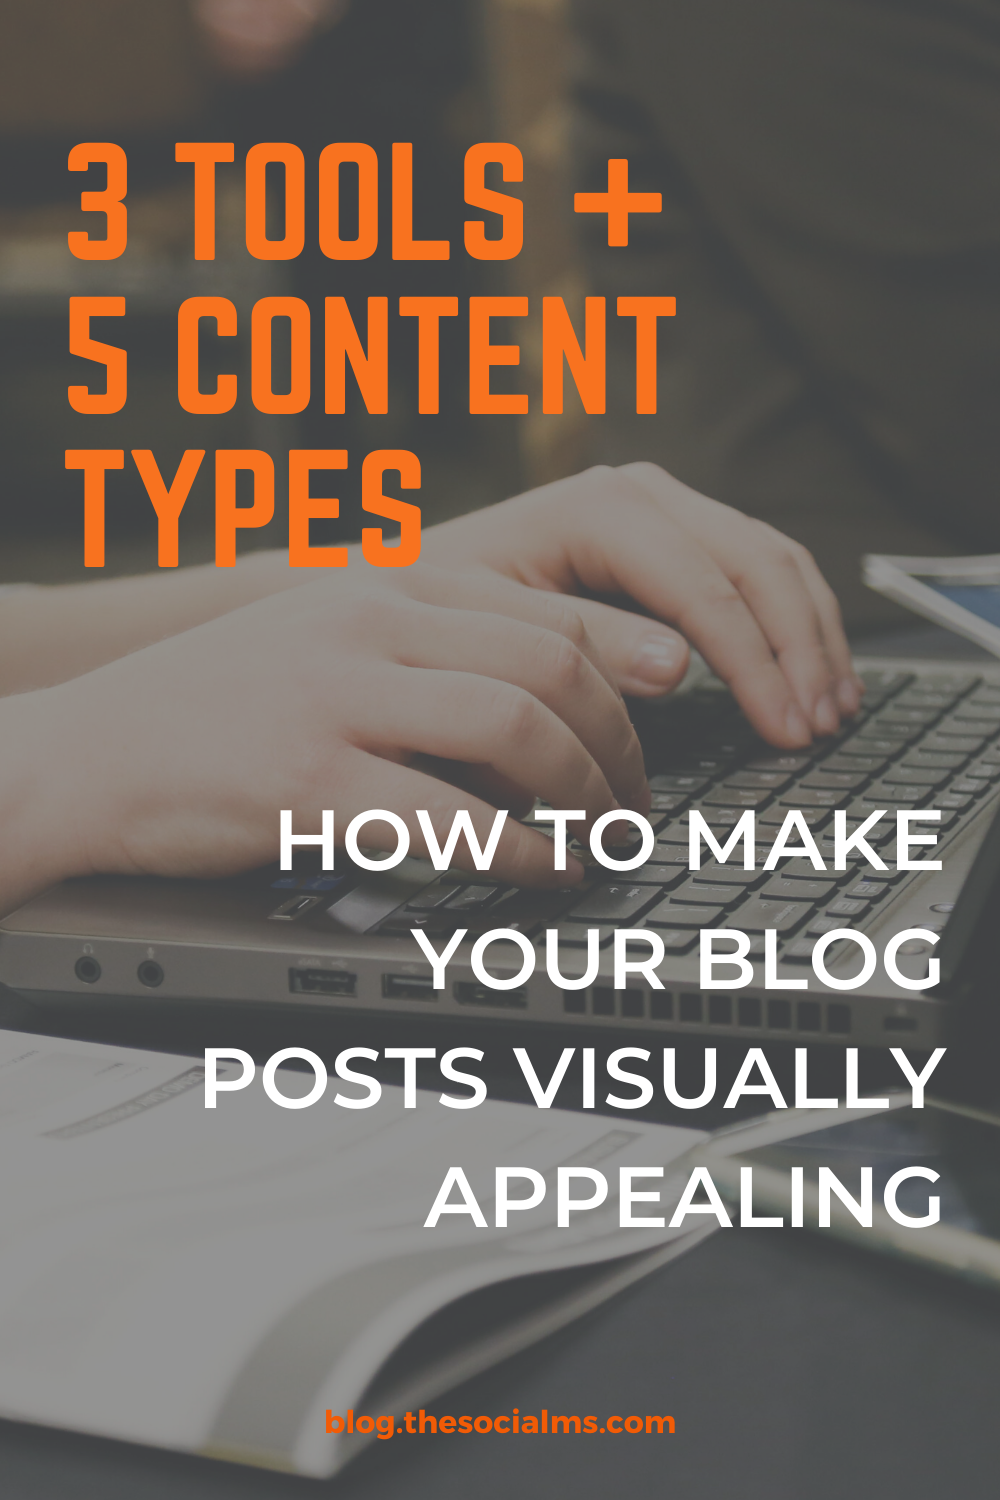 There are basically 5 types of graphic content that make sense to add to your blog posts. And here are also 3 tools to help you create these images. #blogpostcreation #blogwriting #contentcreation #conetntmarketing #bloggingforbeginners #blogging101 #bloggingtips